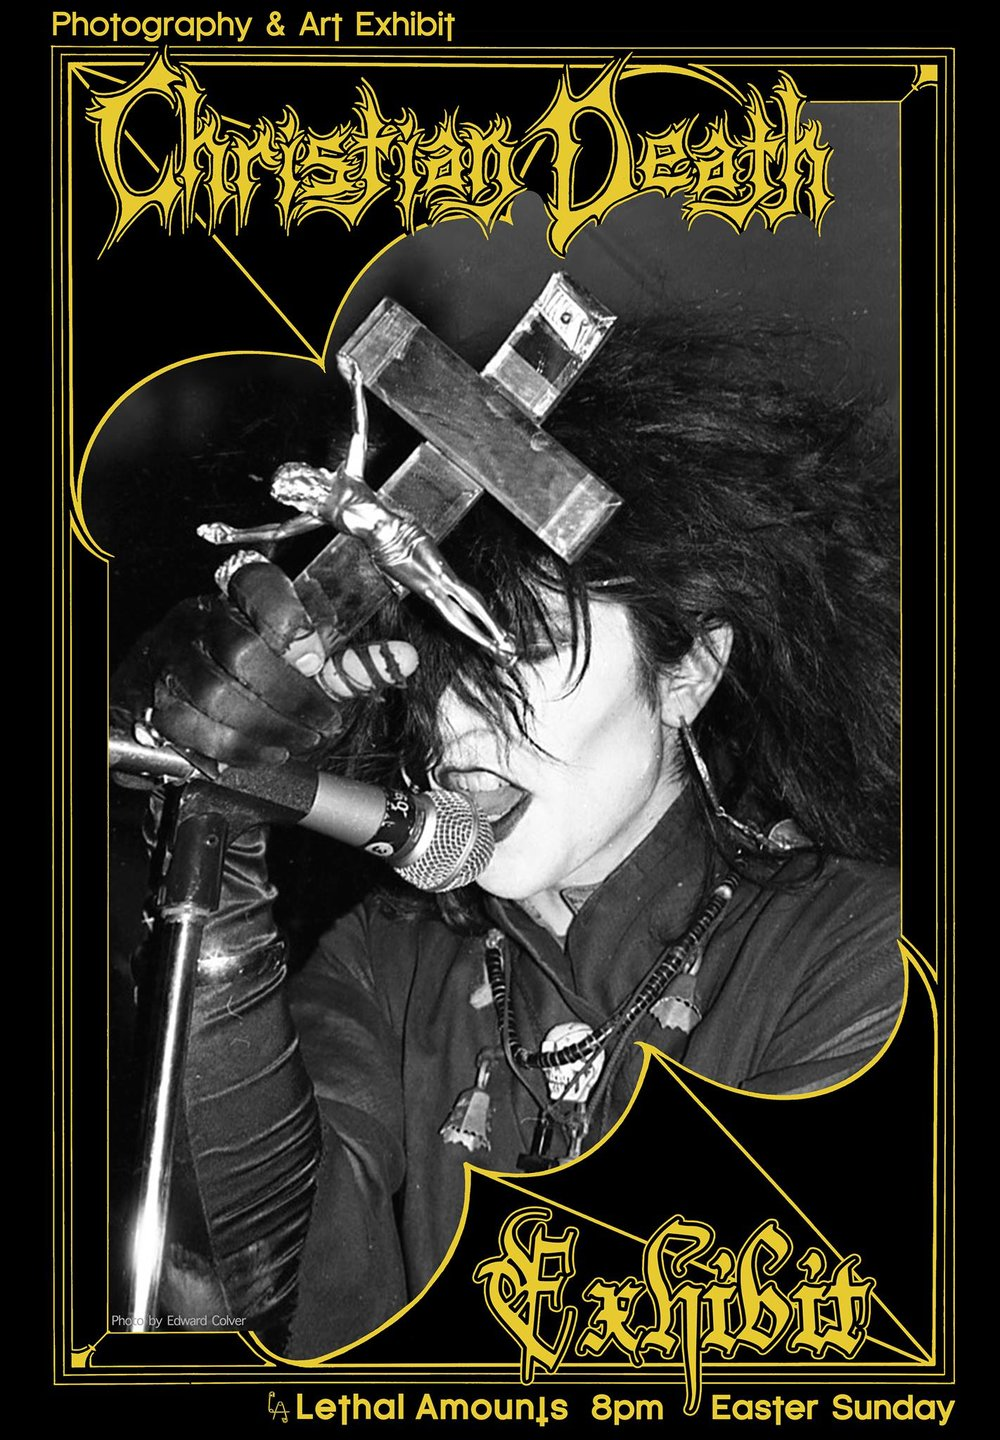 20180401 - Christian Death Art Show - Flyer 1.jpg